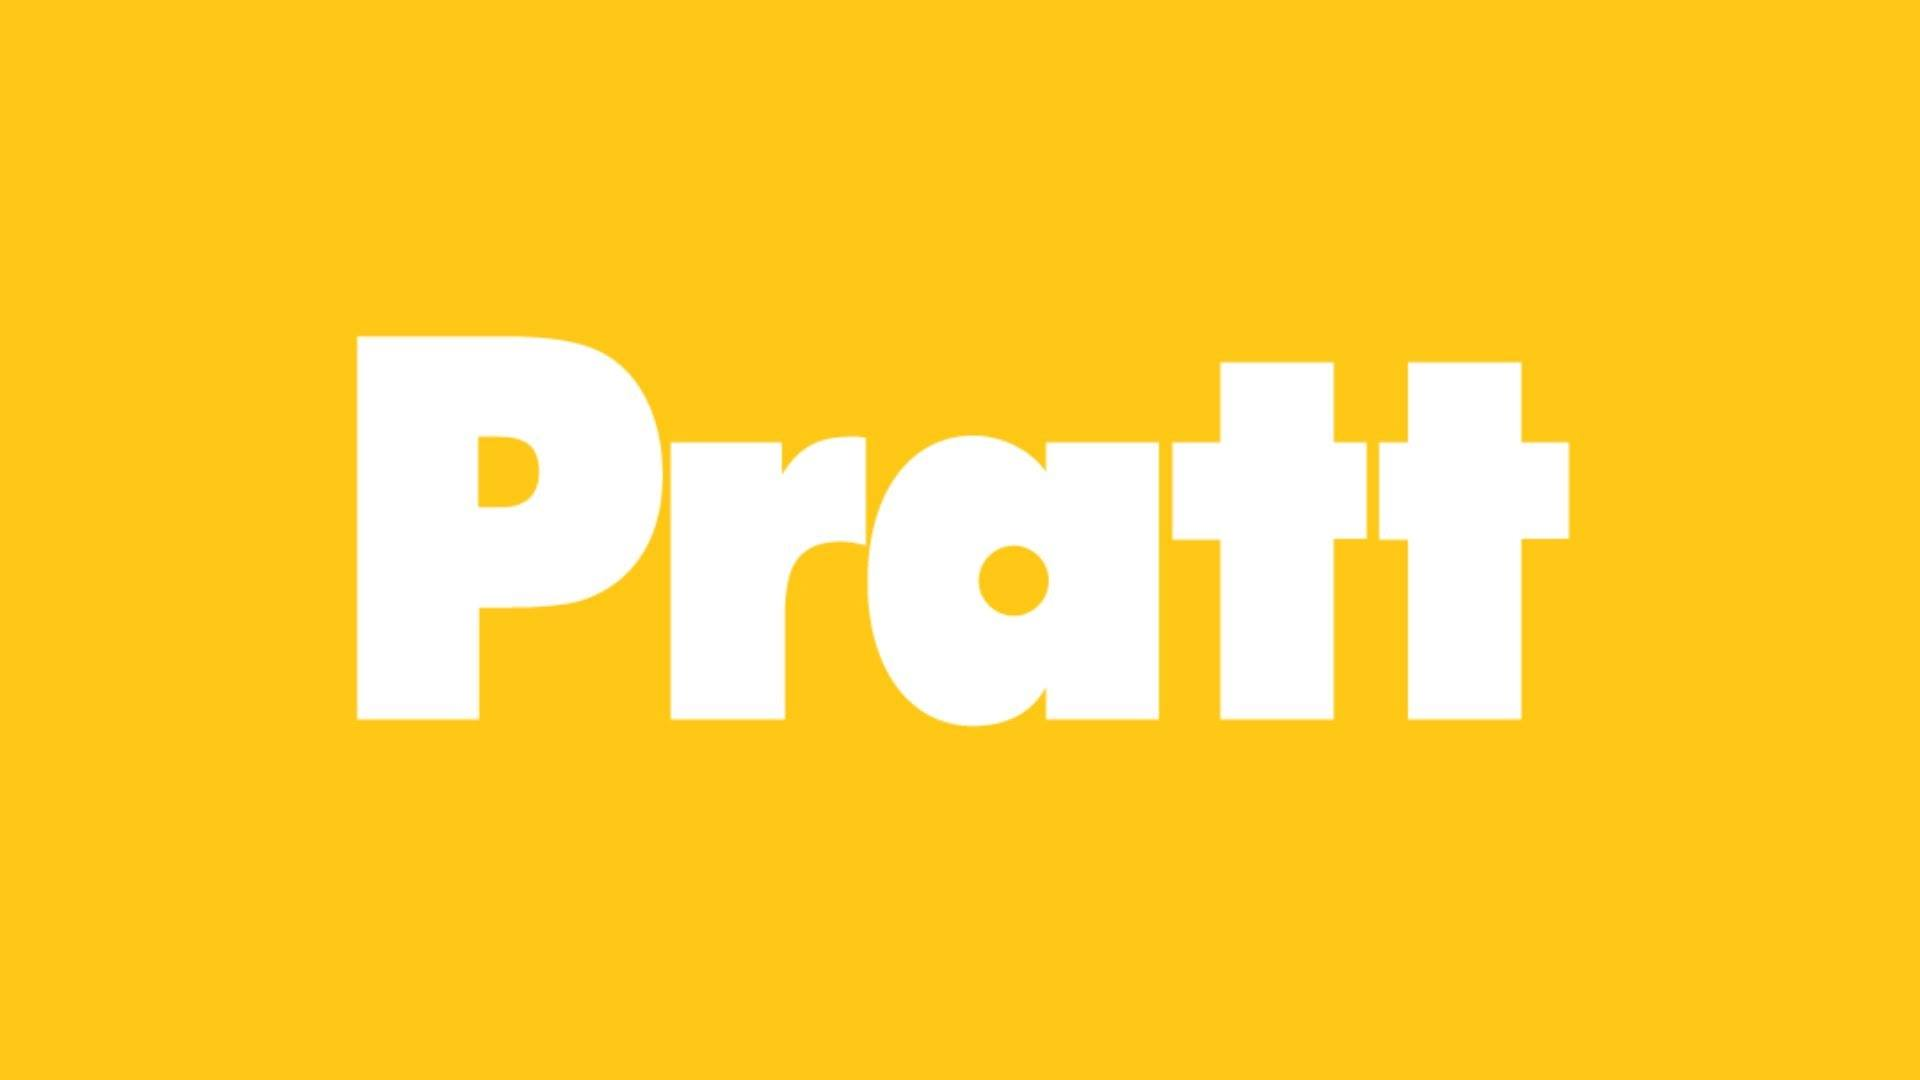 Pratt institute logo